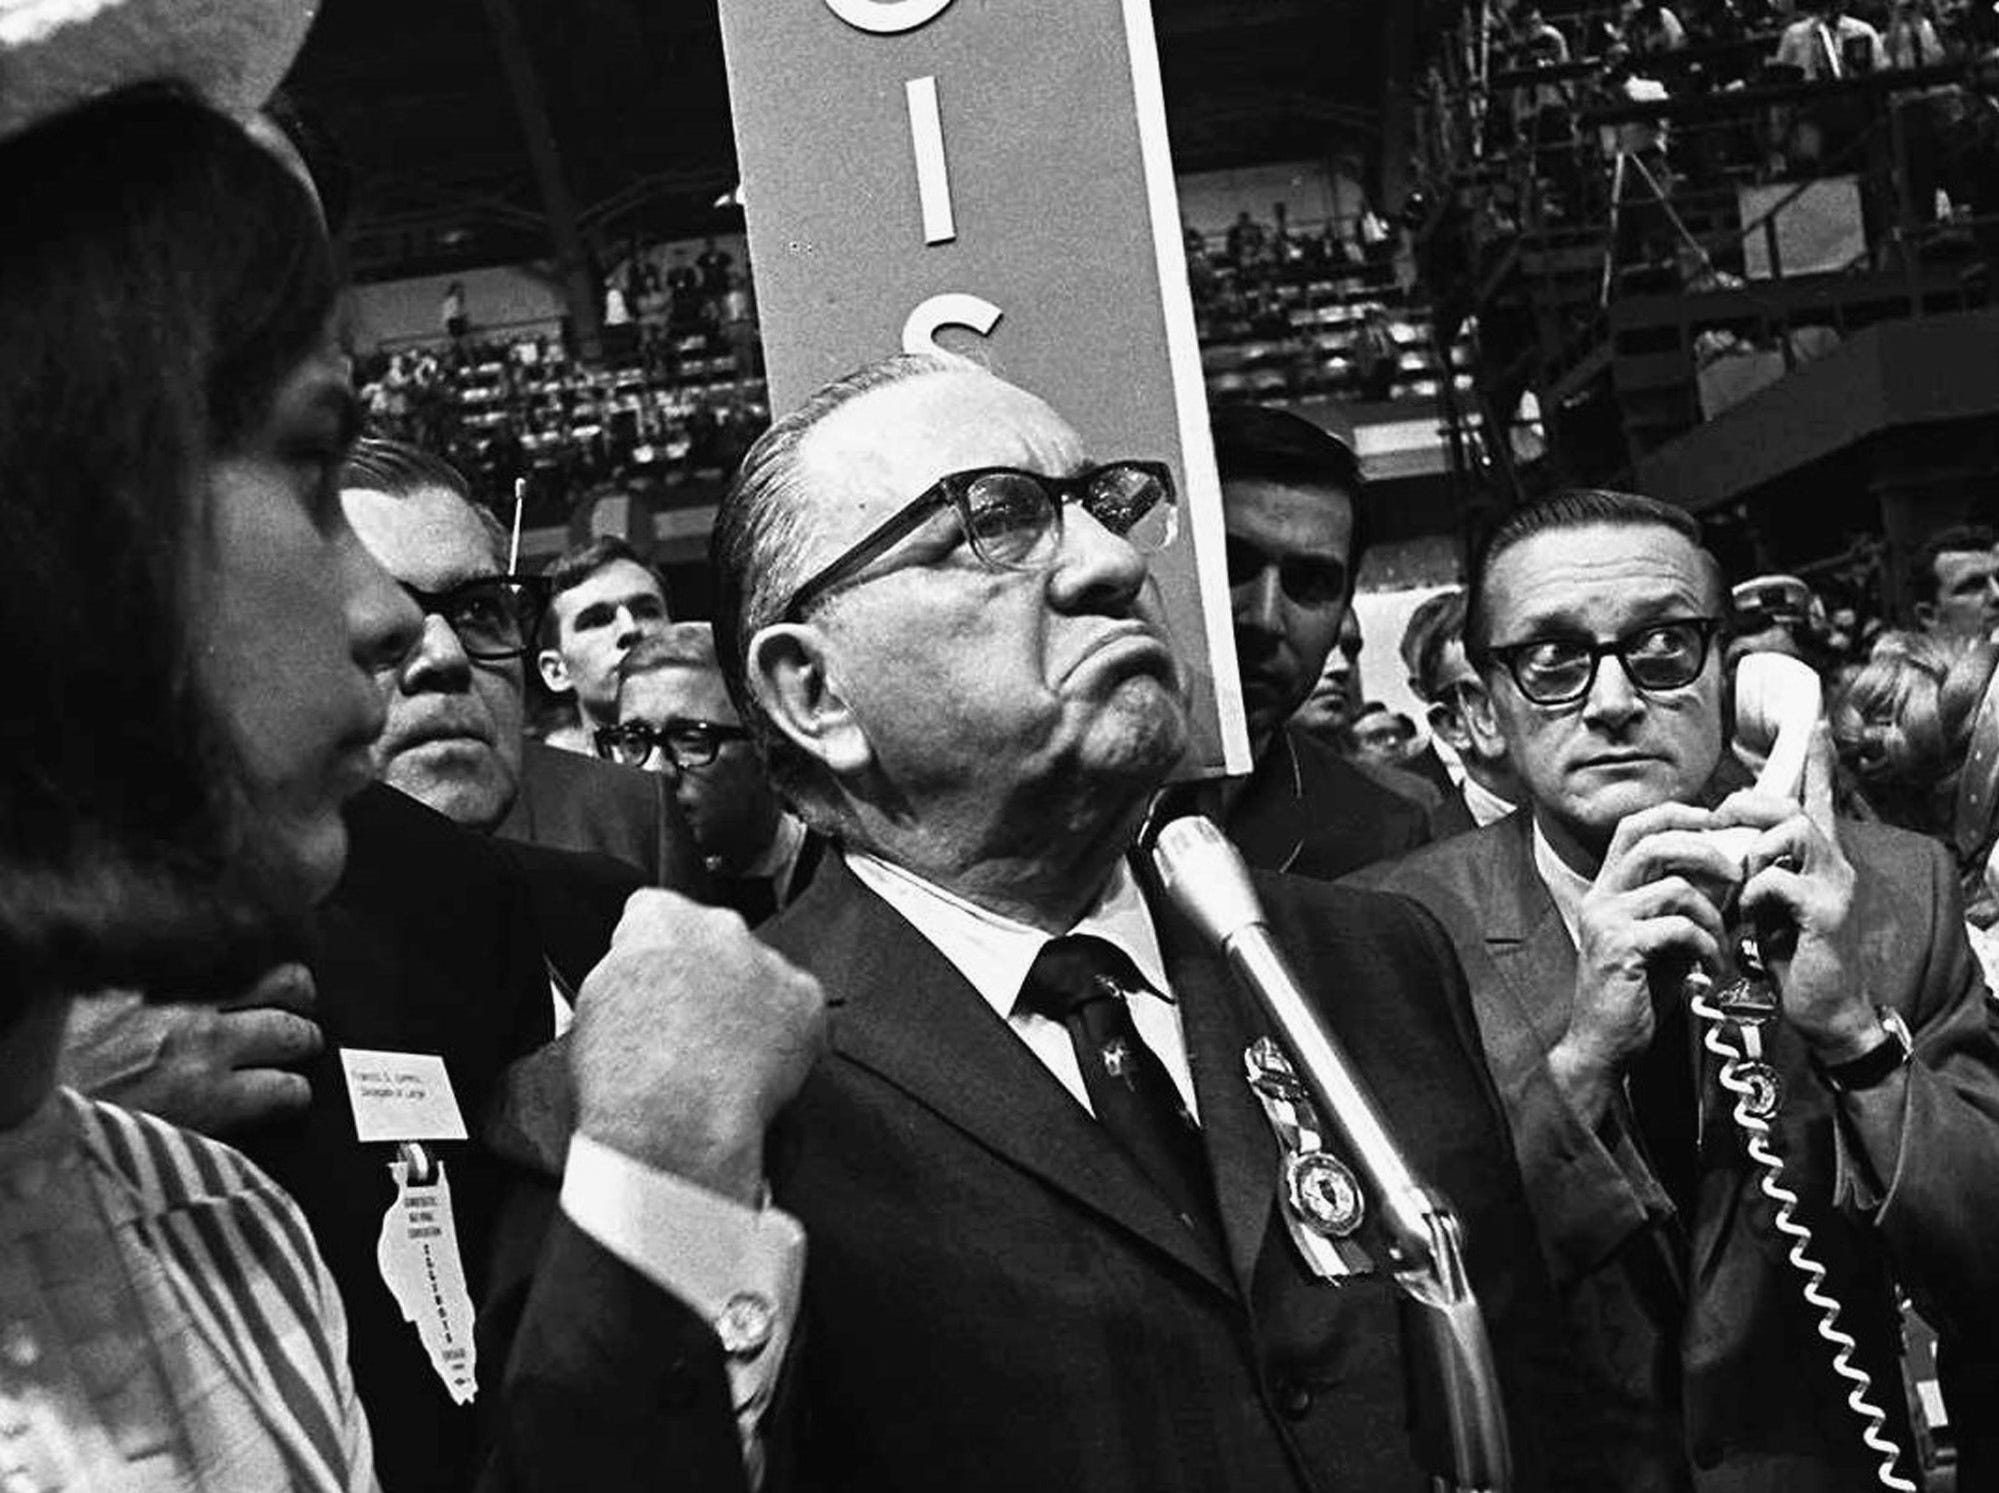 Chicago Mayor Richard J. Daley stands at the microphone as shouts resound through the International Amphitheatre in Chicago on Aug. 28, 1968, demanding that the Democratic National Convention adjourn until later in the day before considering the party platform. During the convention, hundreds of demonstrators waged war with police and National Guardsmen on the streets of Chicago.